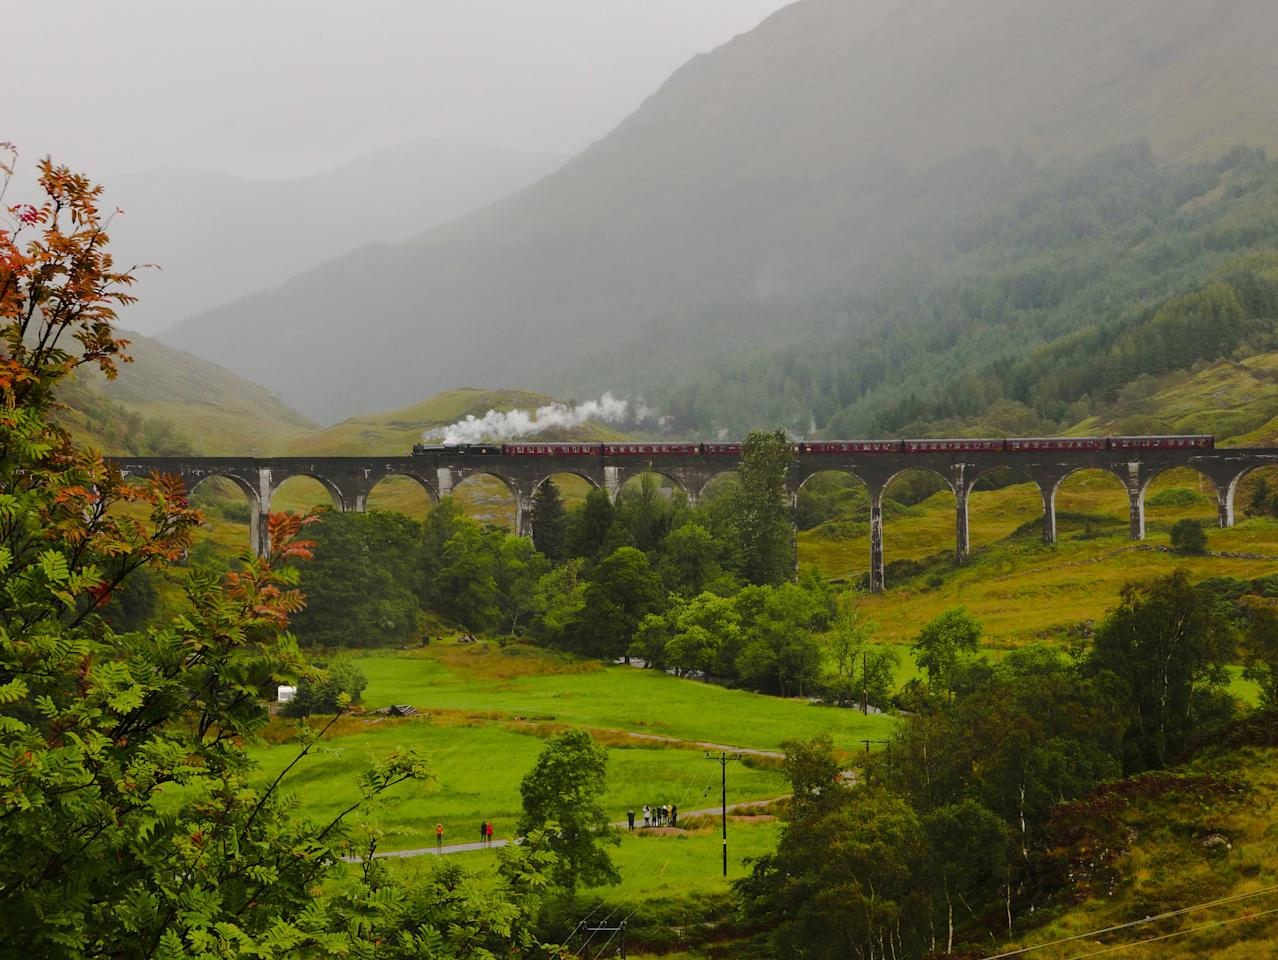 <p>Recognise this railway from somewhere? This is where the Hogwarts Express transported Harry Potter in the second and third films, and the route is as beautiful as it is on the screen. [Photo: Flickr/pollonfi] </p>